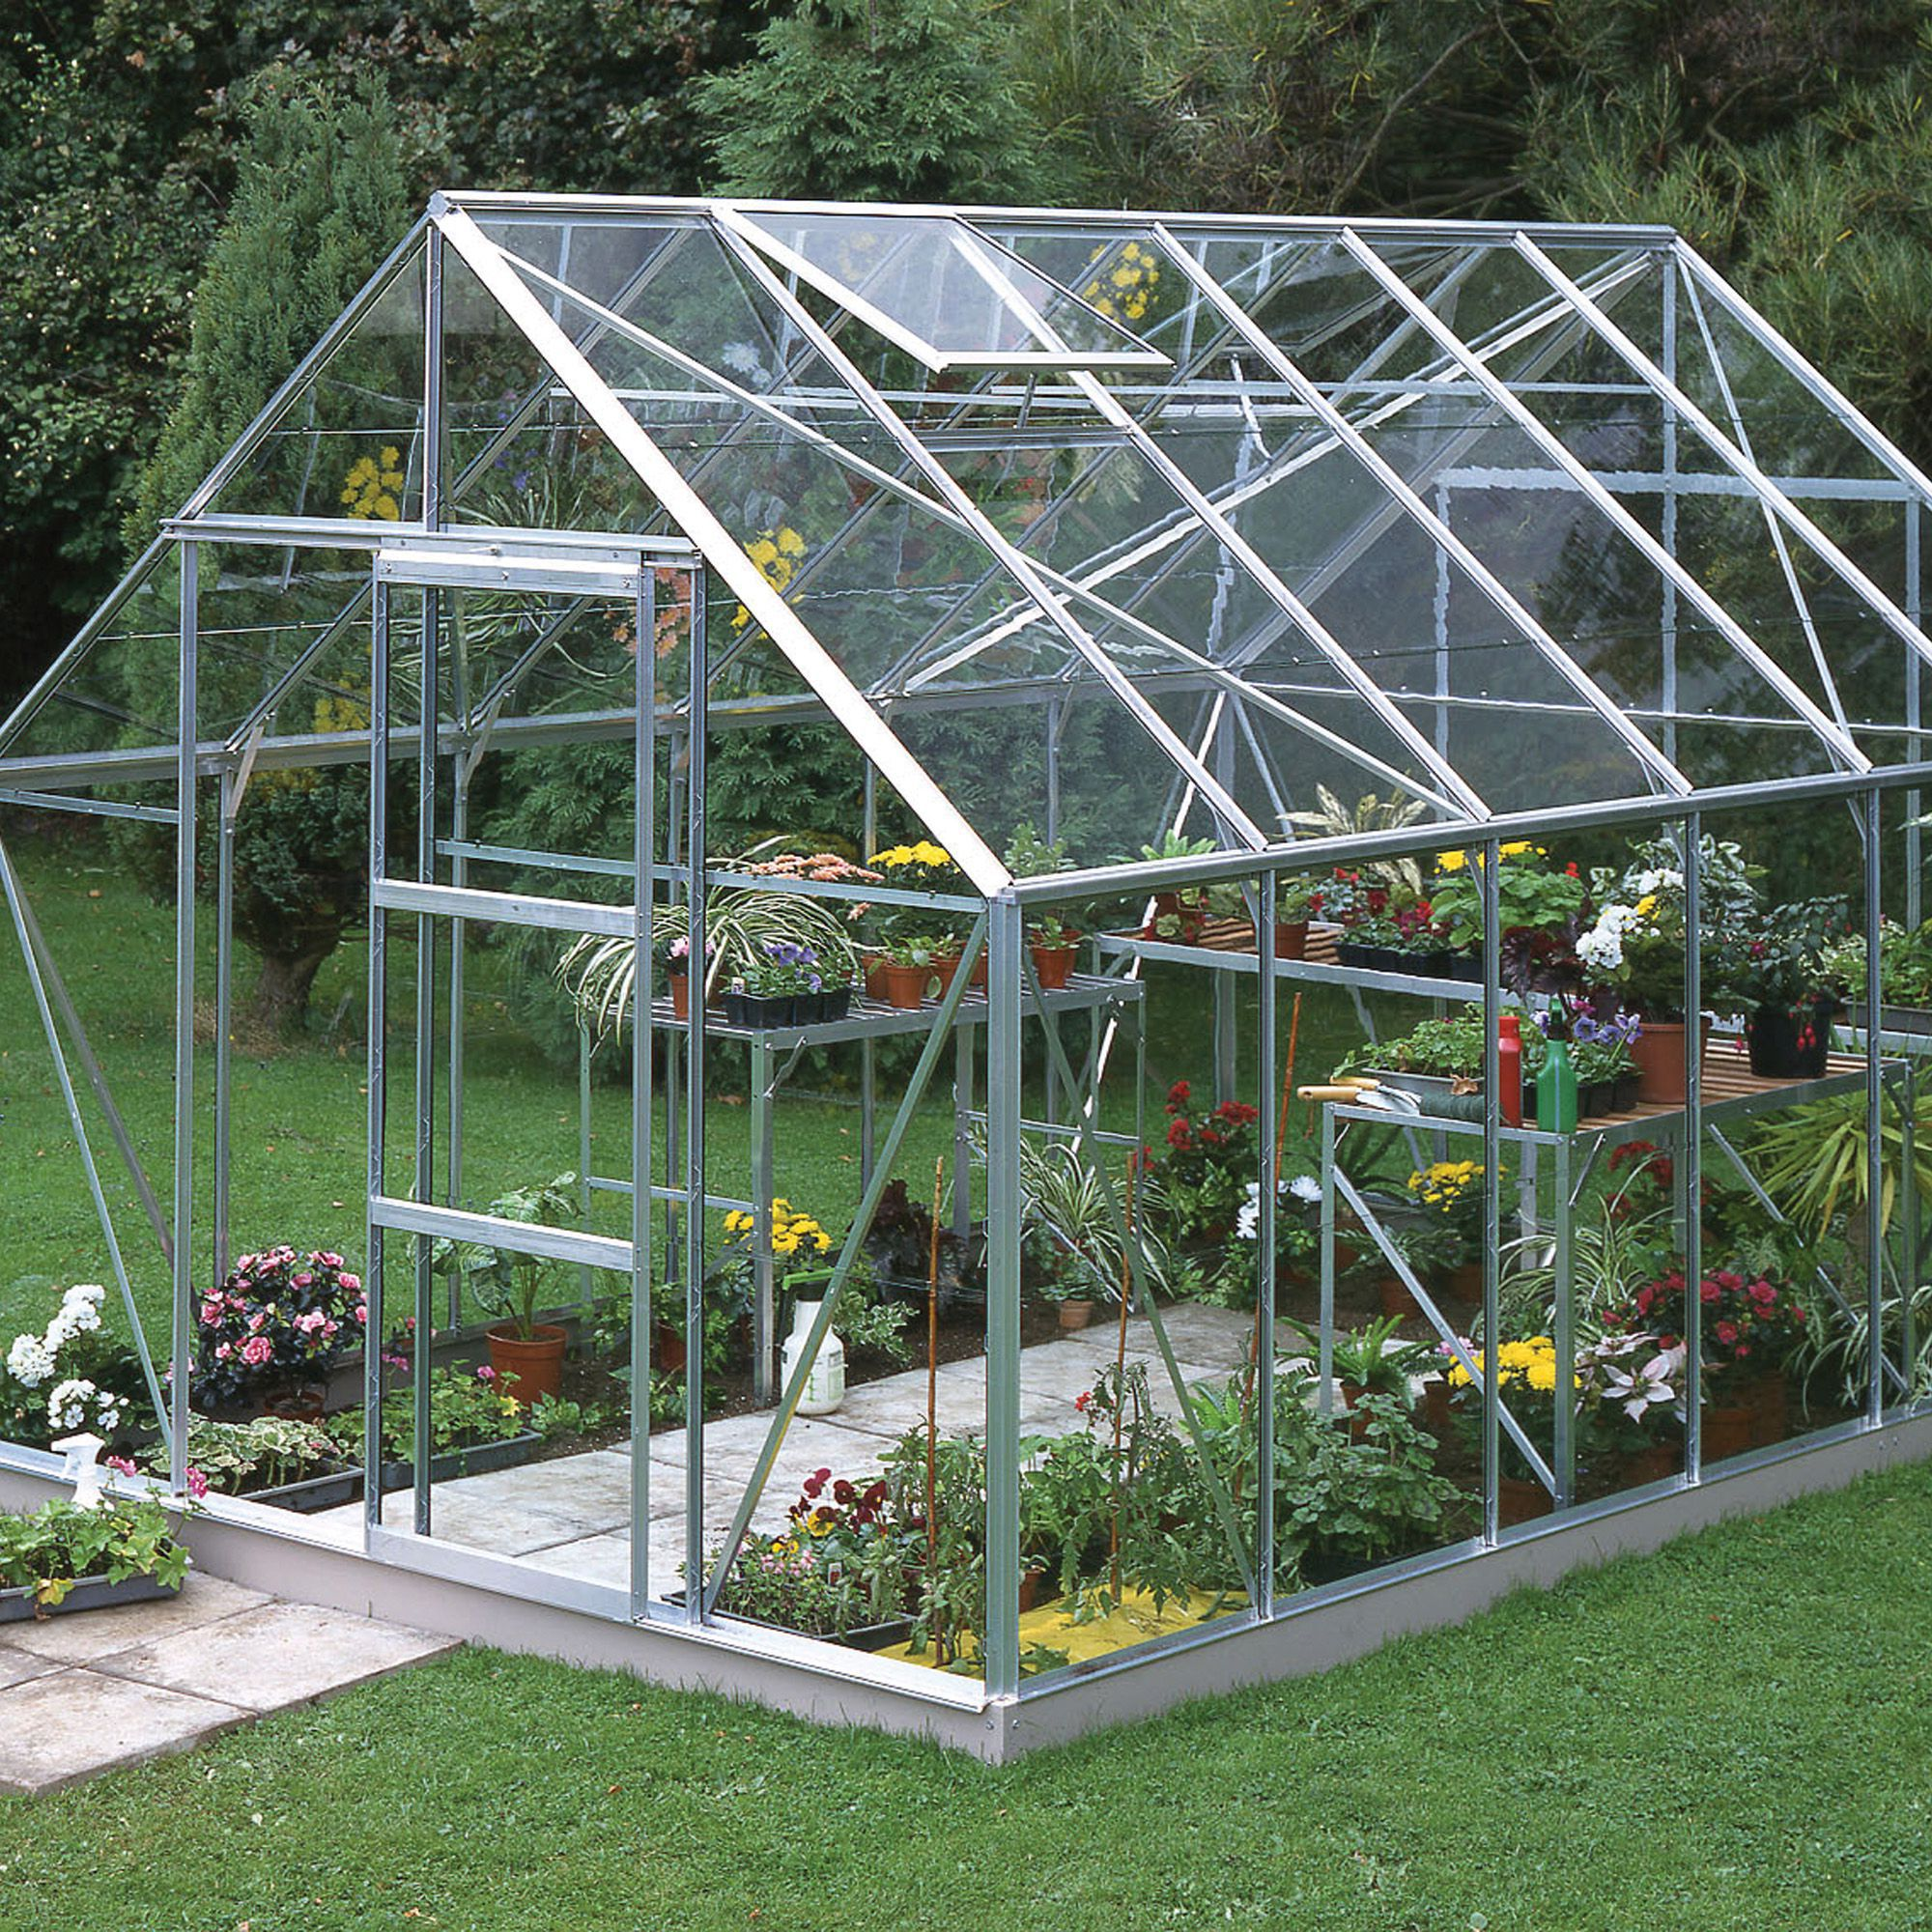 B&Q Premier Metal 6x10 Toughened safety glass greenhouse